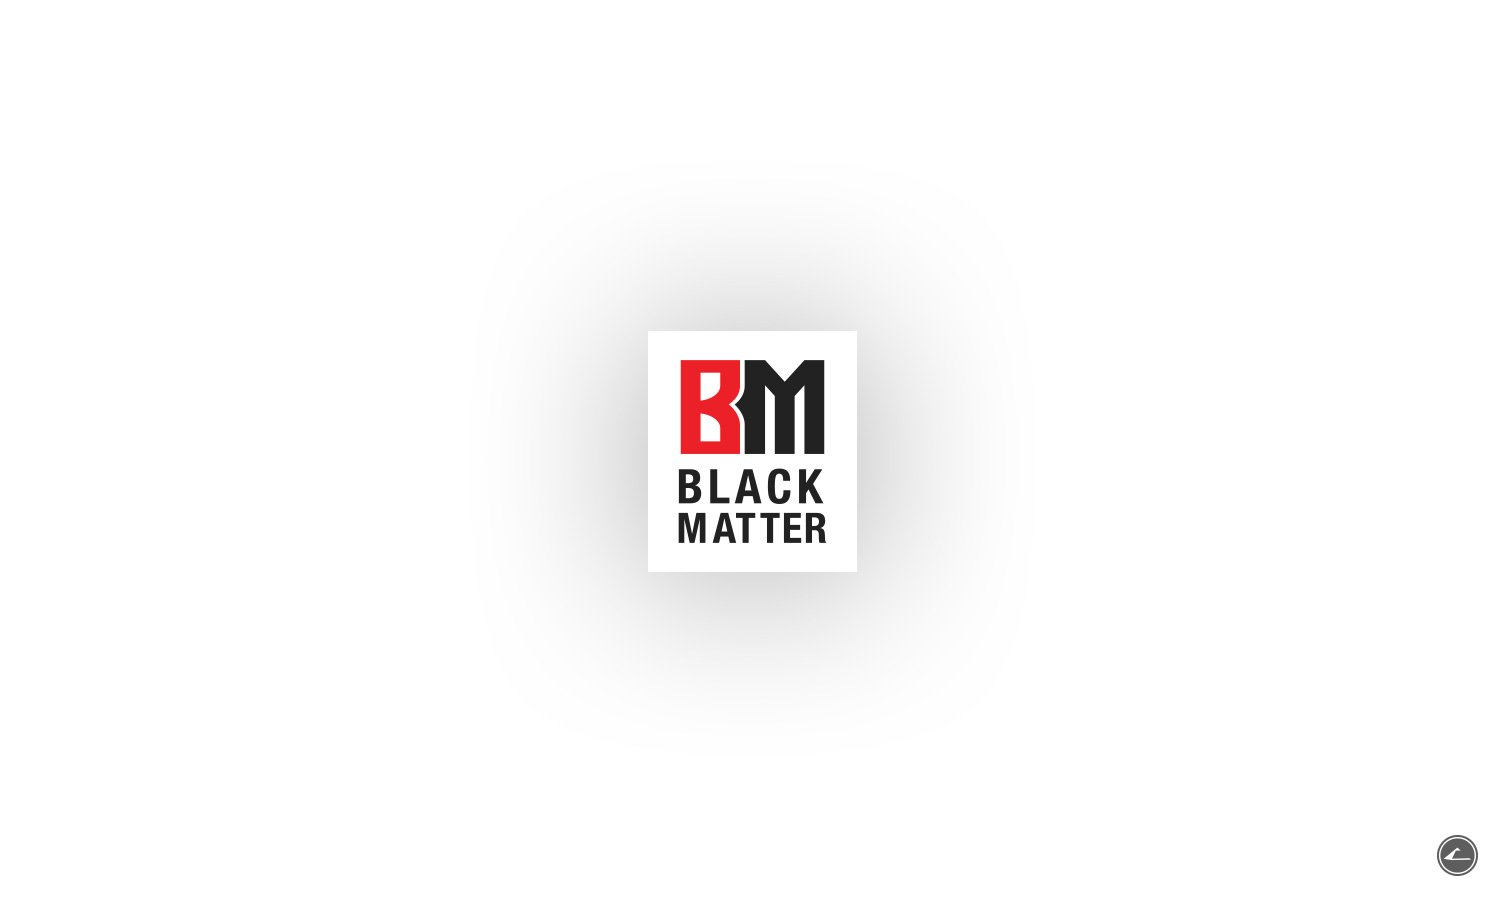 Black-matter_logo_red